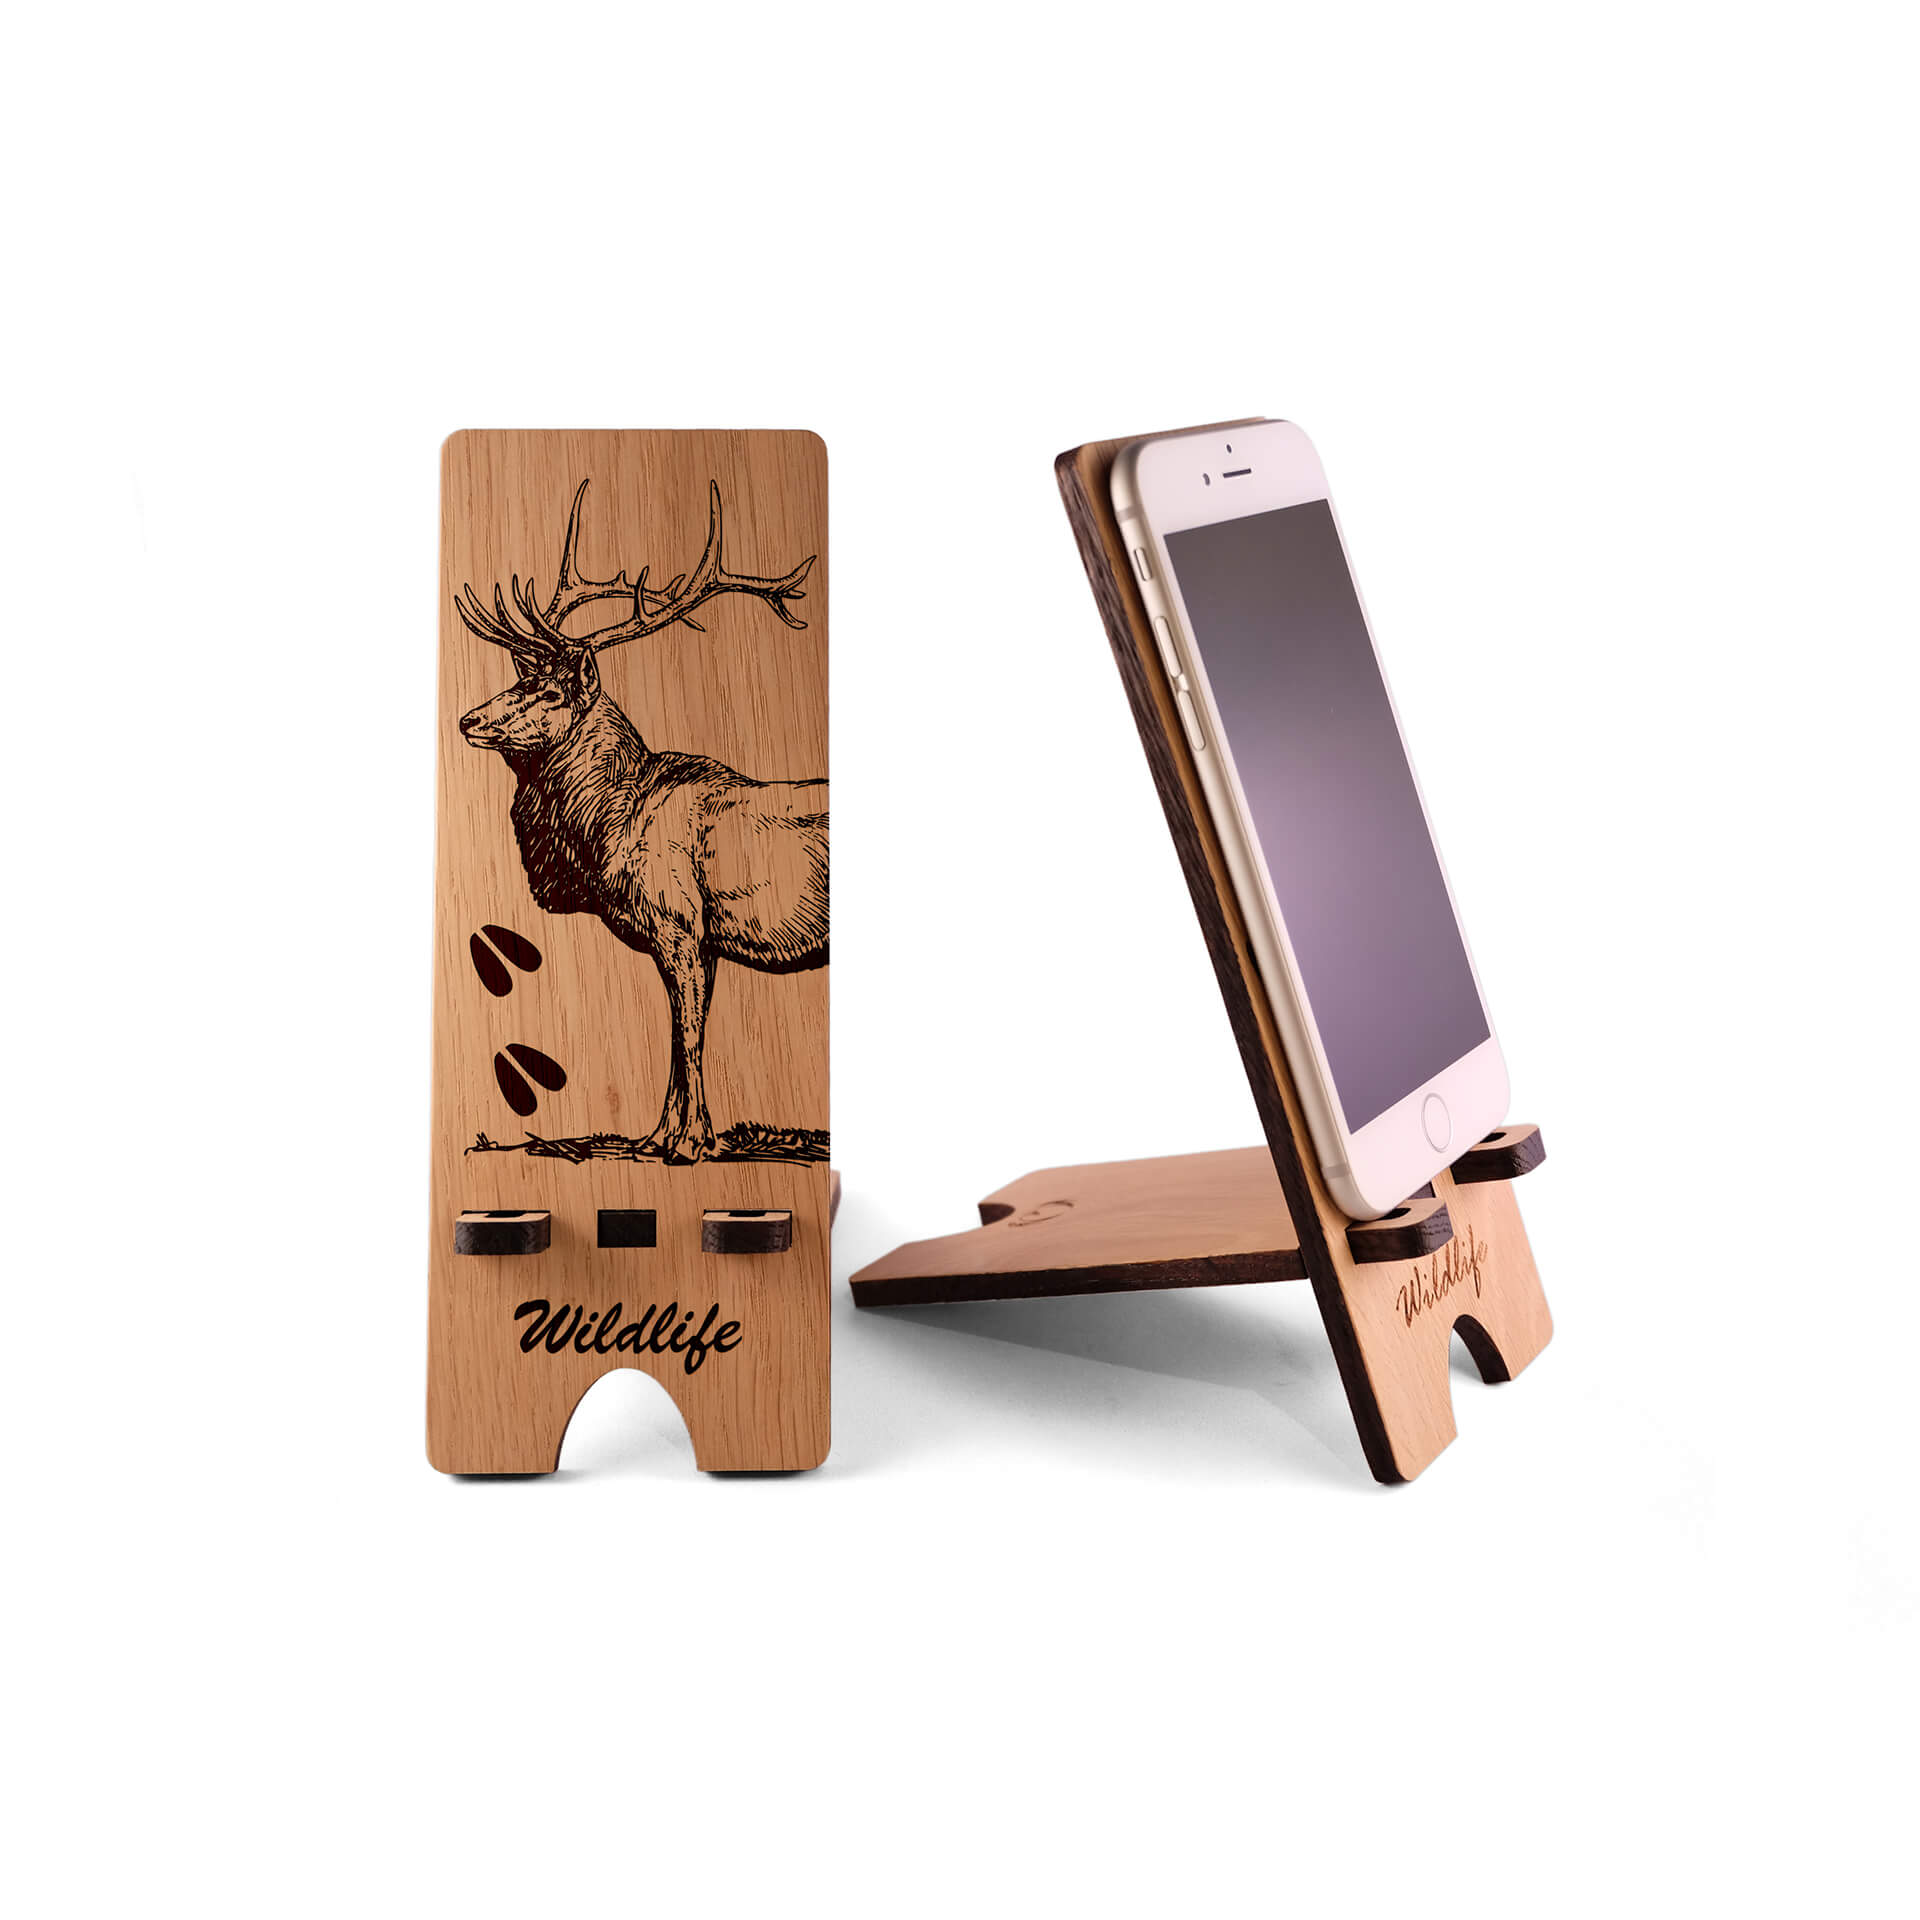 Wood iPhone Stand, Wildlife Themed Phone Stand, Wooden Docking Station - Fire Feather Designs